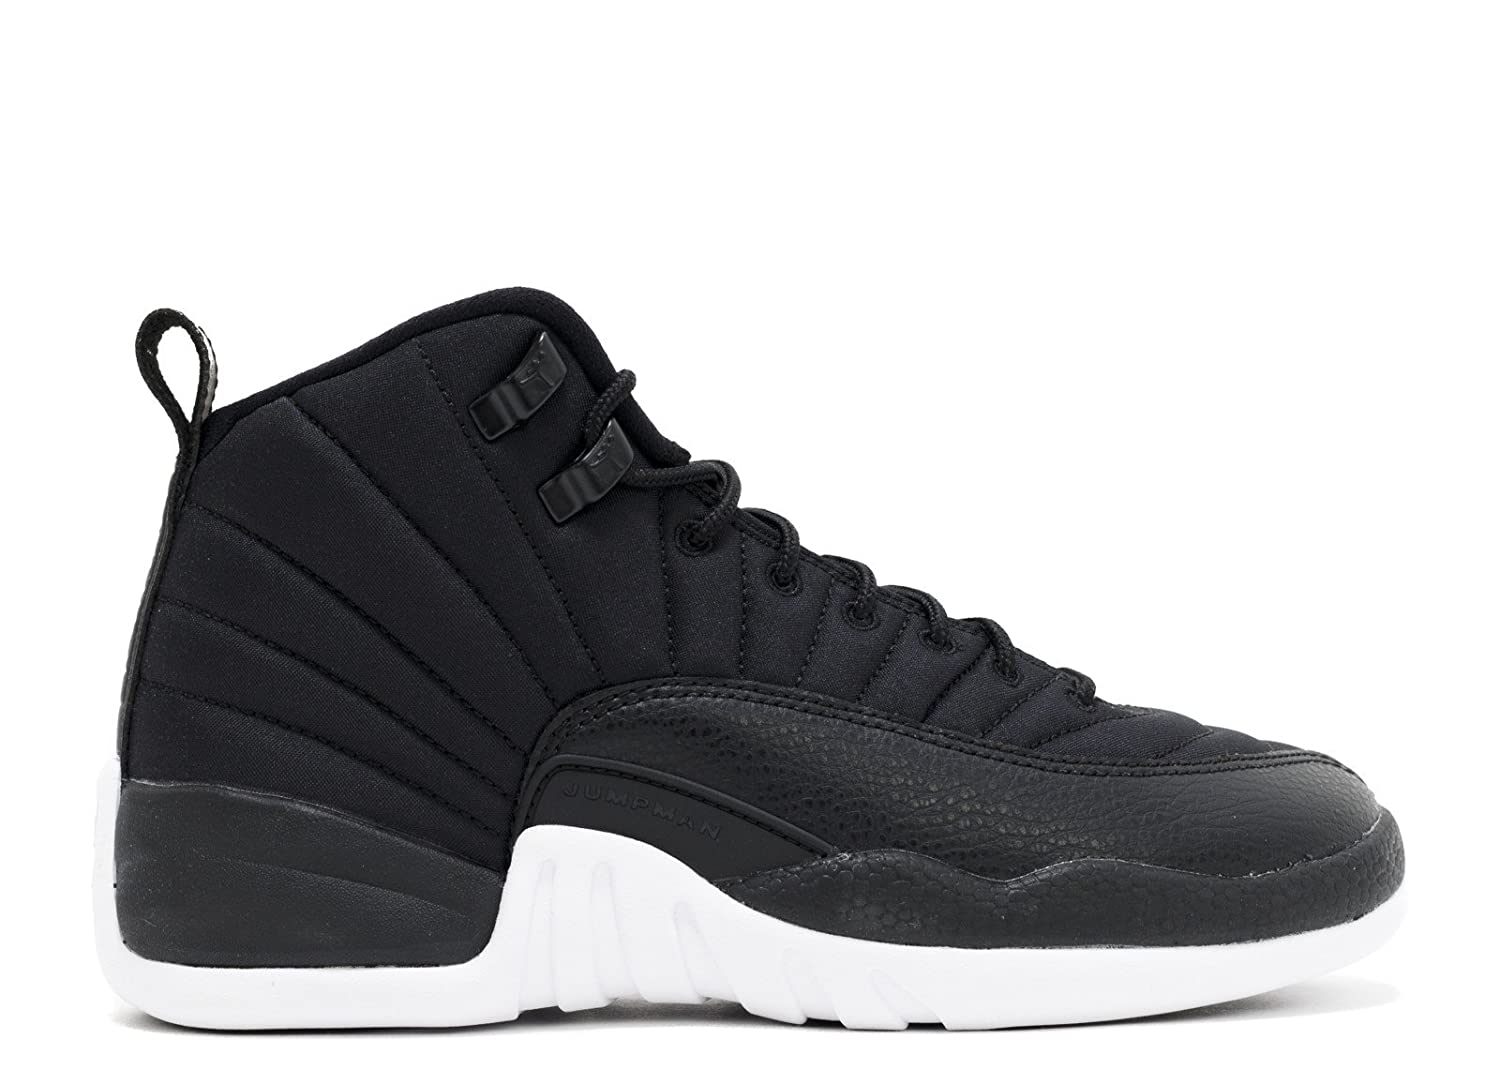 572ca55a88f Amazon.com | AIR Jordan 12 Retro BG (GS) 'Nylon' - 153265-004 | Basketball